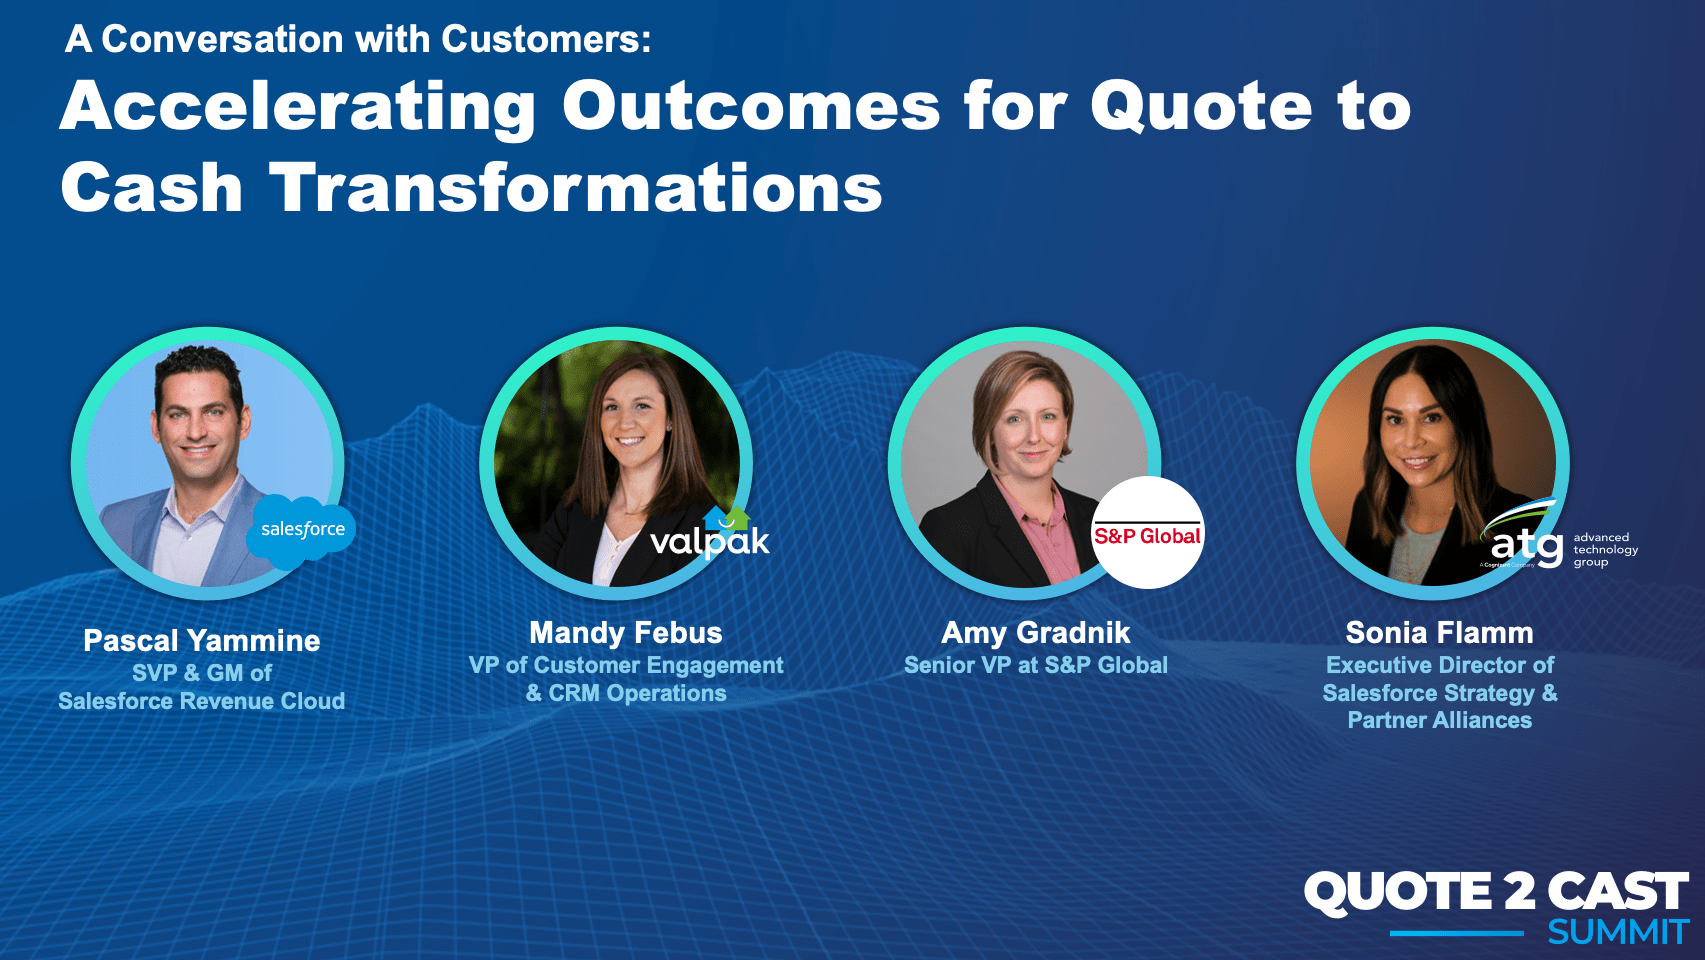 Q2Cast 2021: Accelerating Outcomes for Transformations